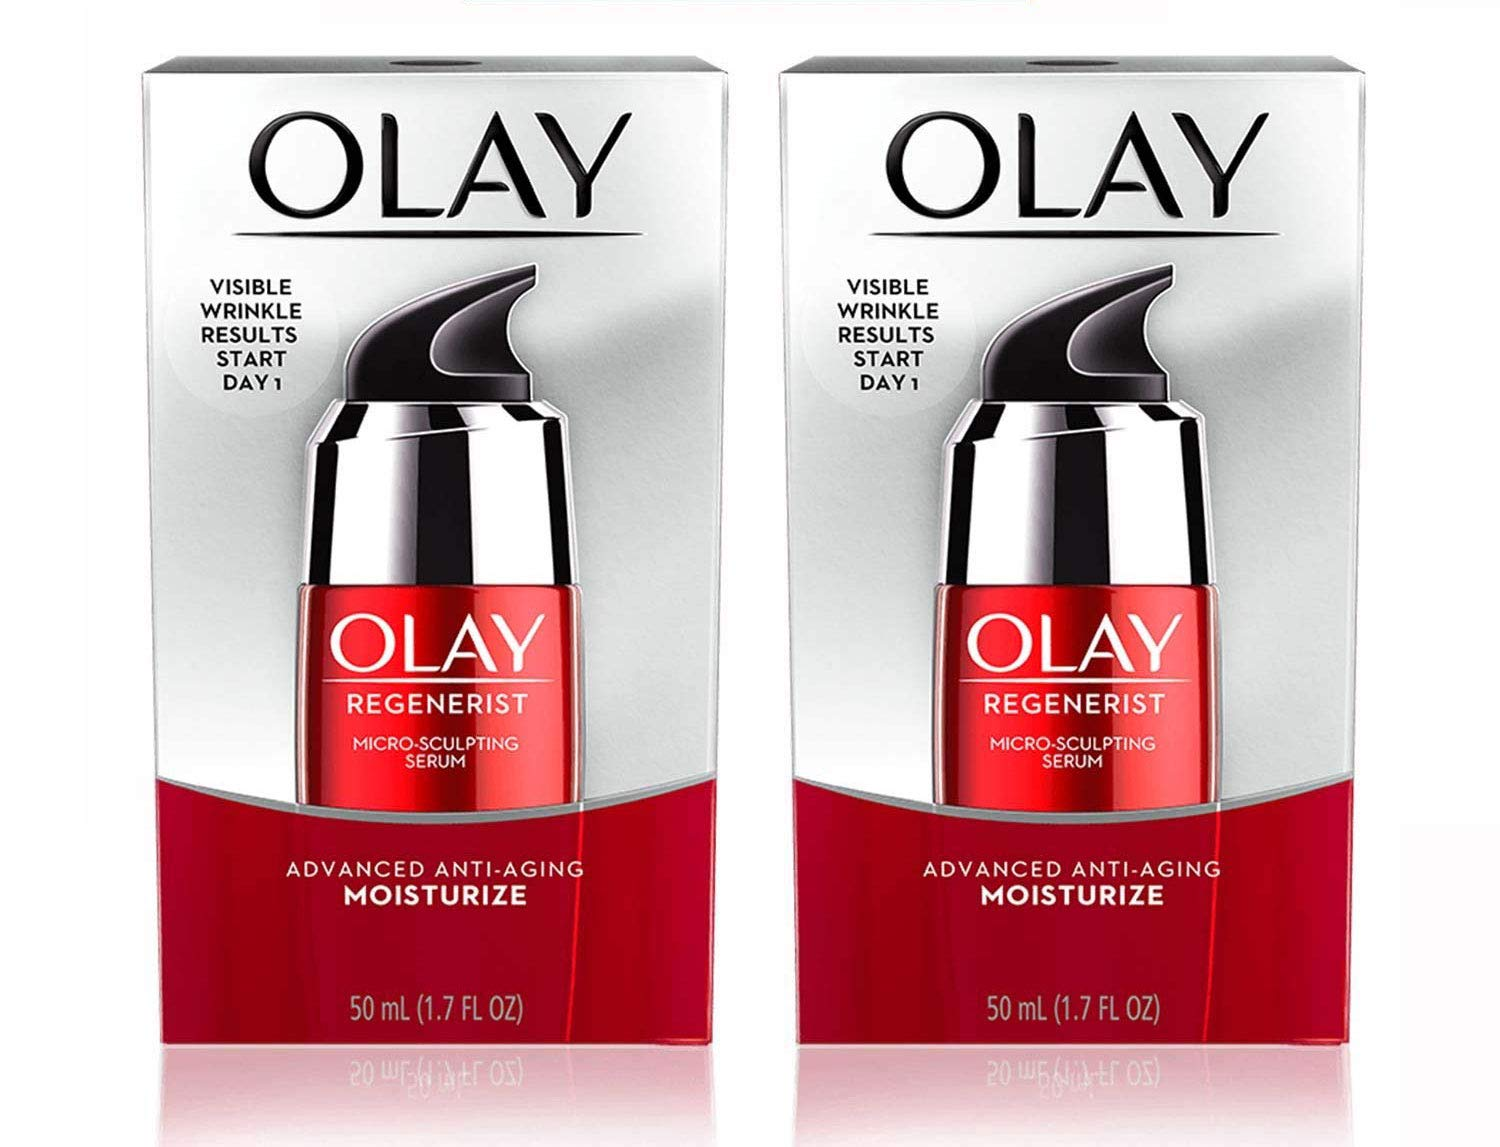 (PACK of 2) 0lay Regenerist Micro-Sculpting Serum Advanced Anti-Aging Moisturize - 1.7 Fl Oz (50ml) EACH